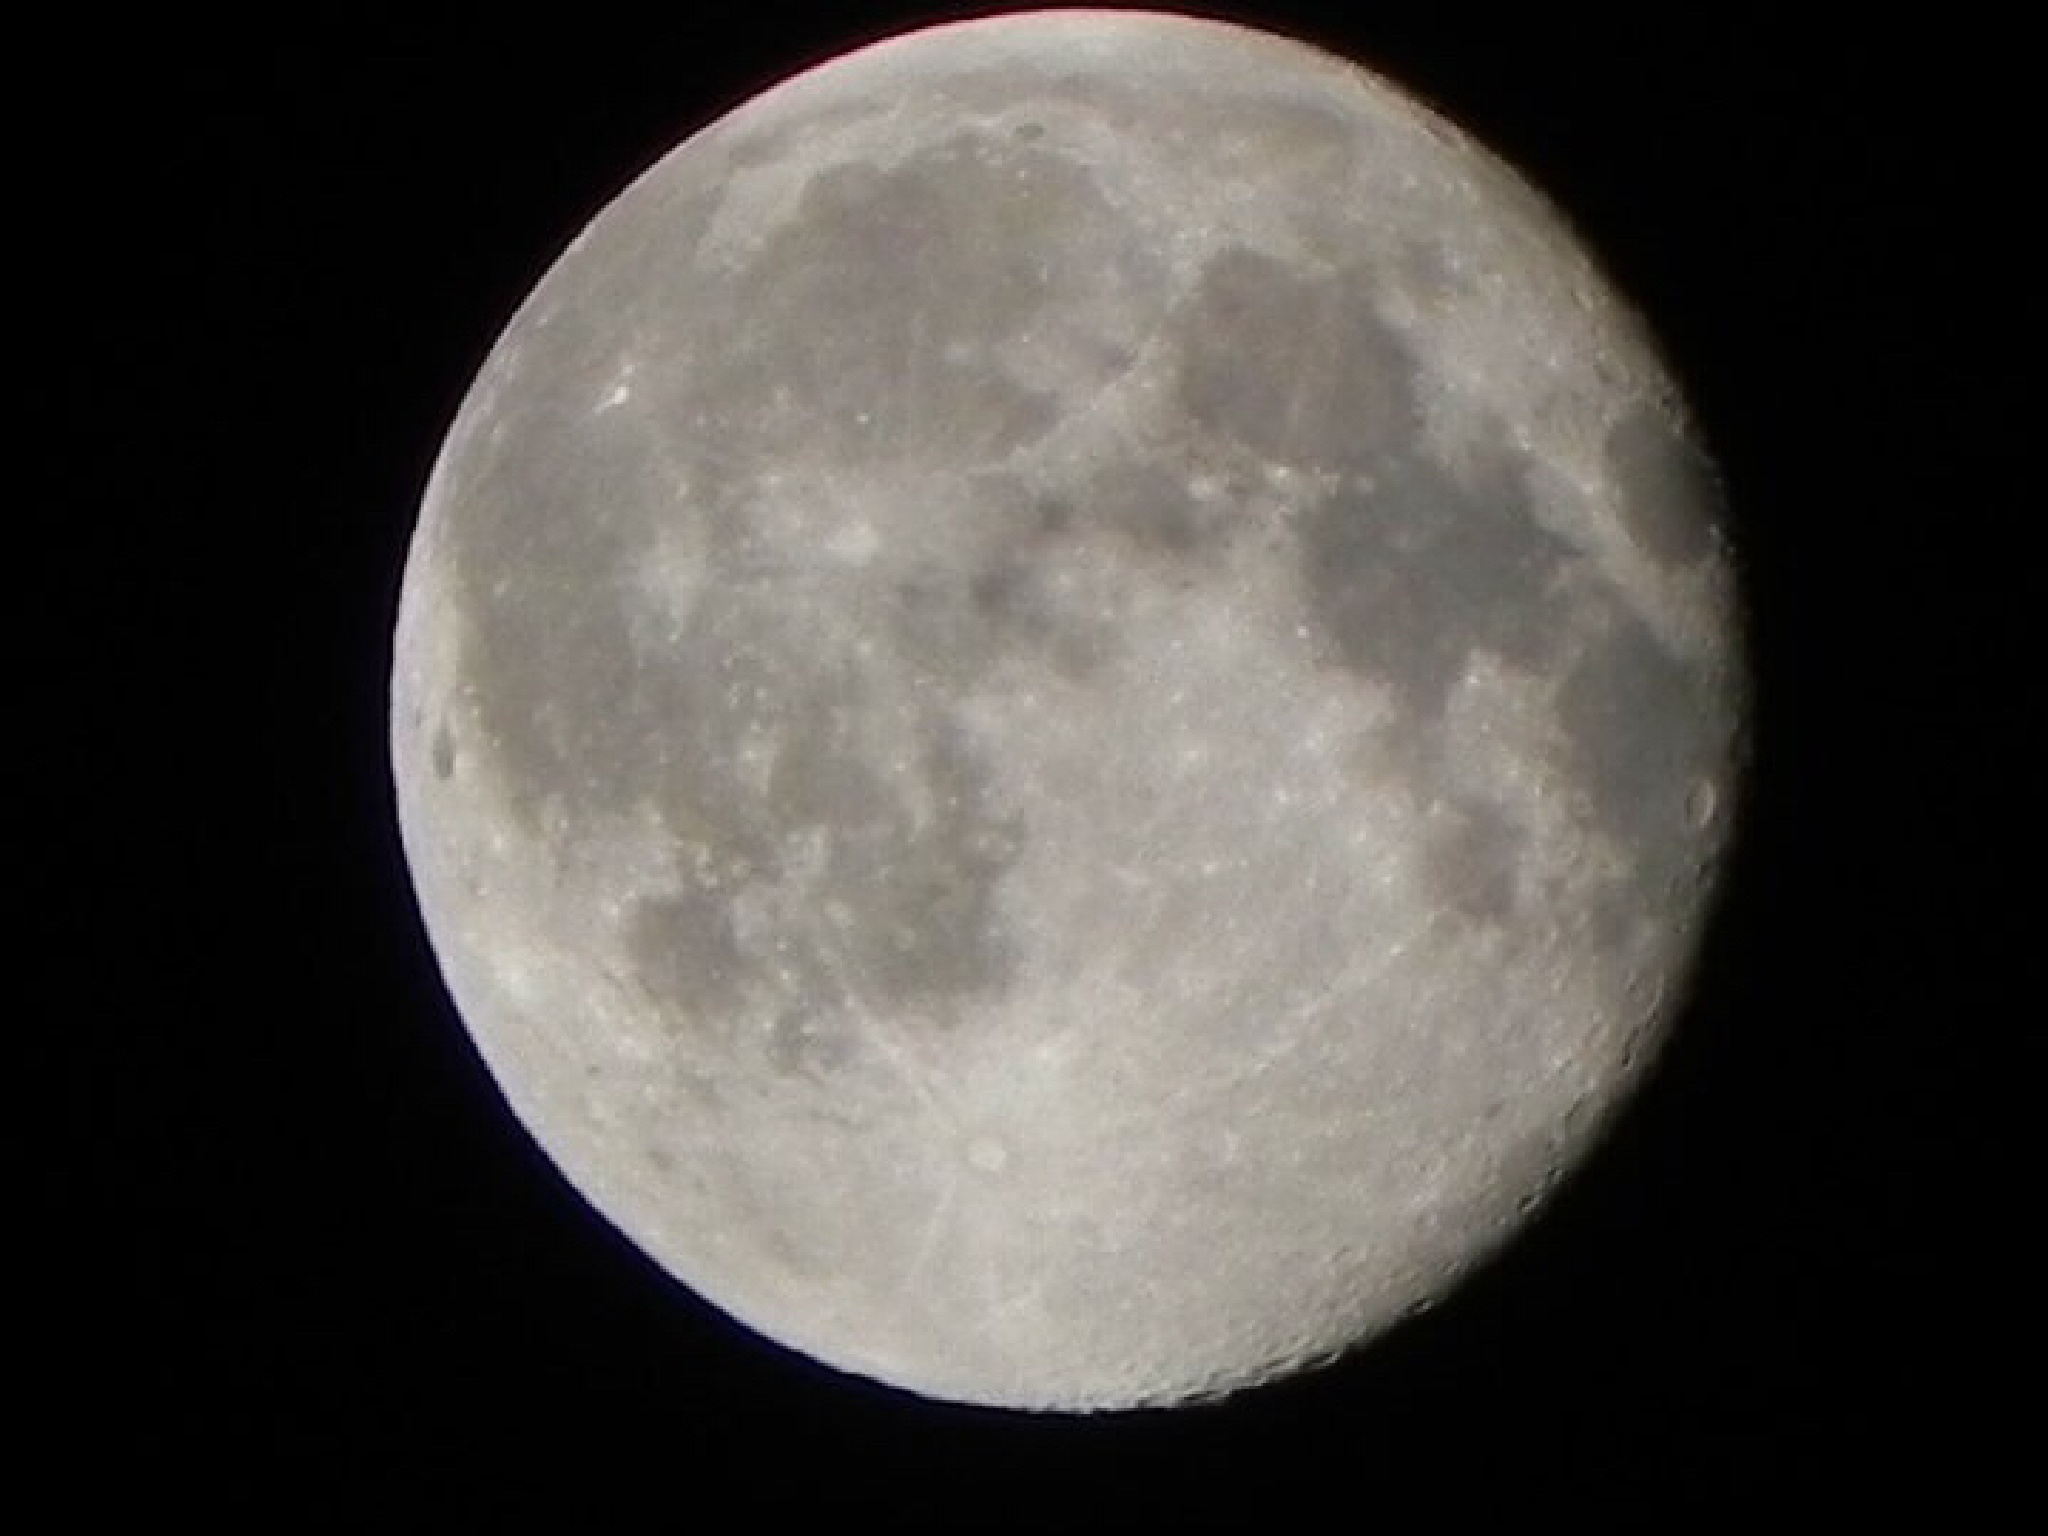 Full moon by Peter Stowell